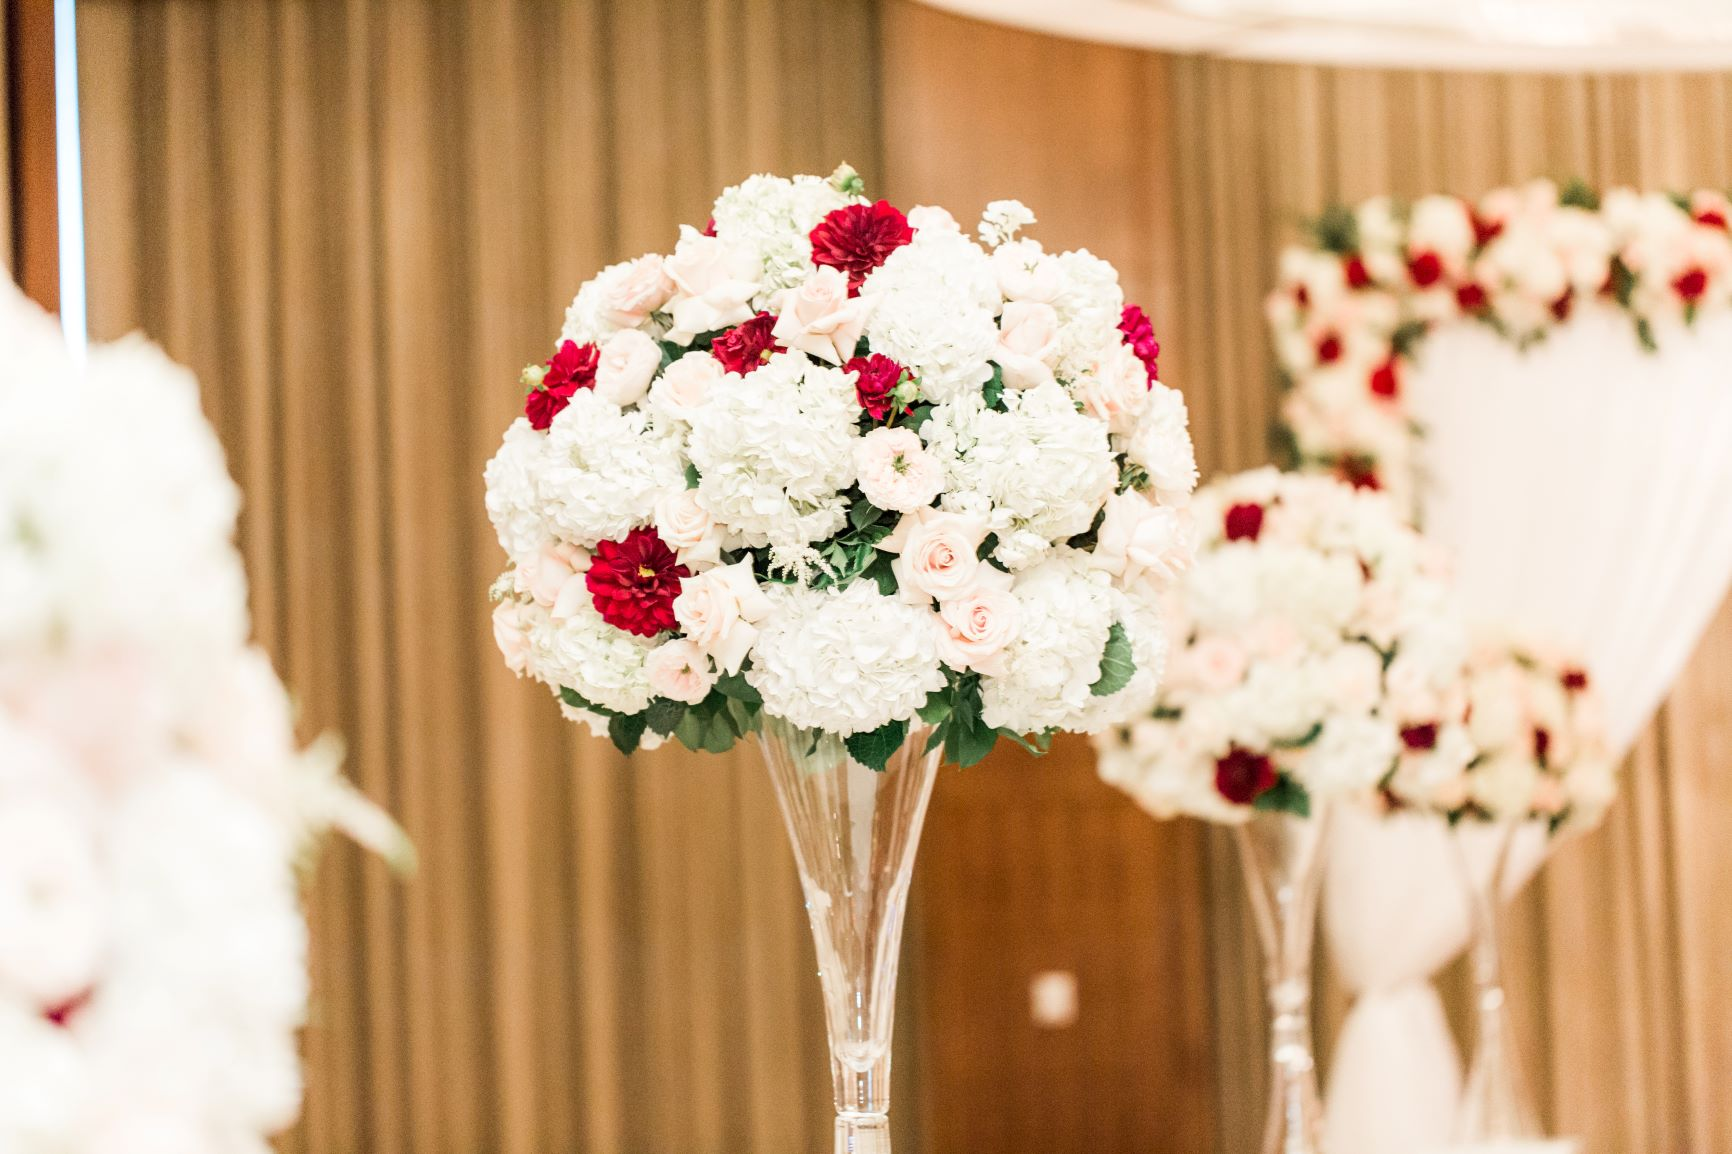 Bouquet style centerpiece with white and red flowers